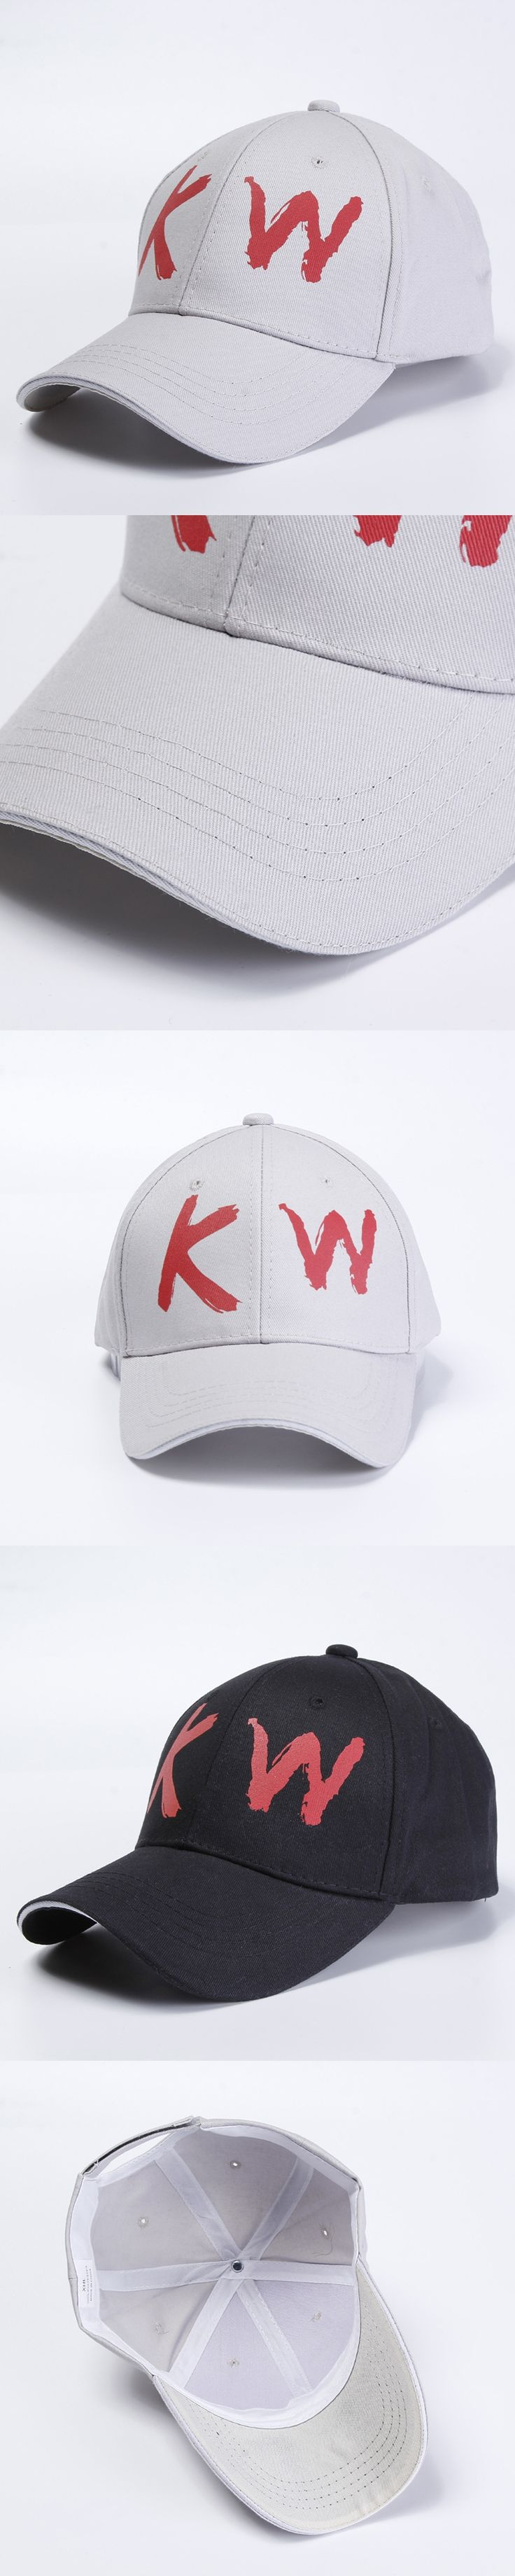 KUYOMENS 2017 Spring And Summer Fashion KW All-match Korean Fashion Peaked Cap Visor Baseball Cap Hat Men Leisure Curved Eaves